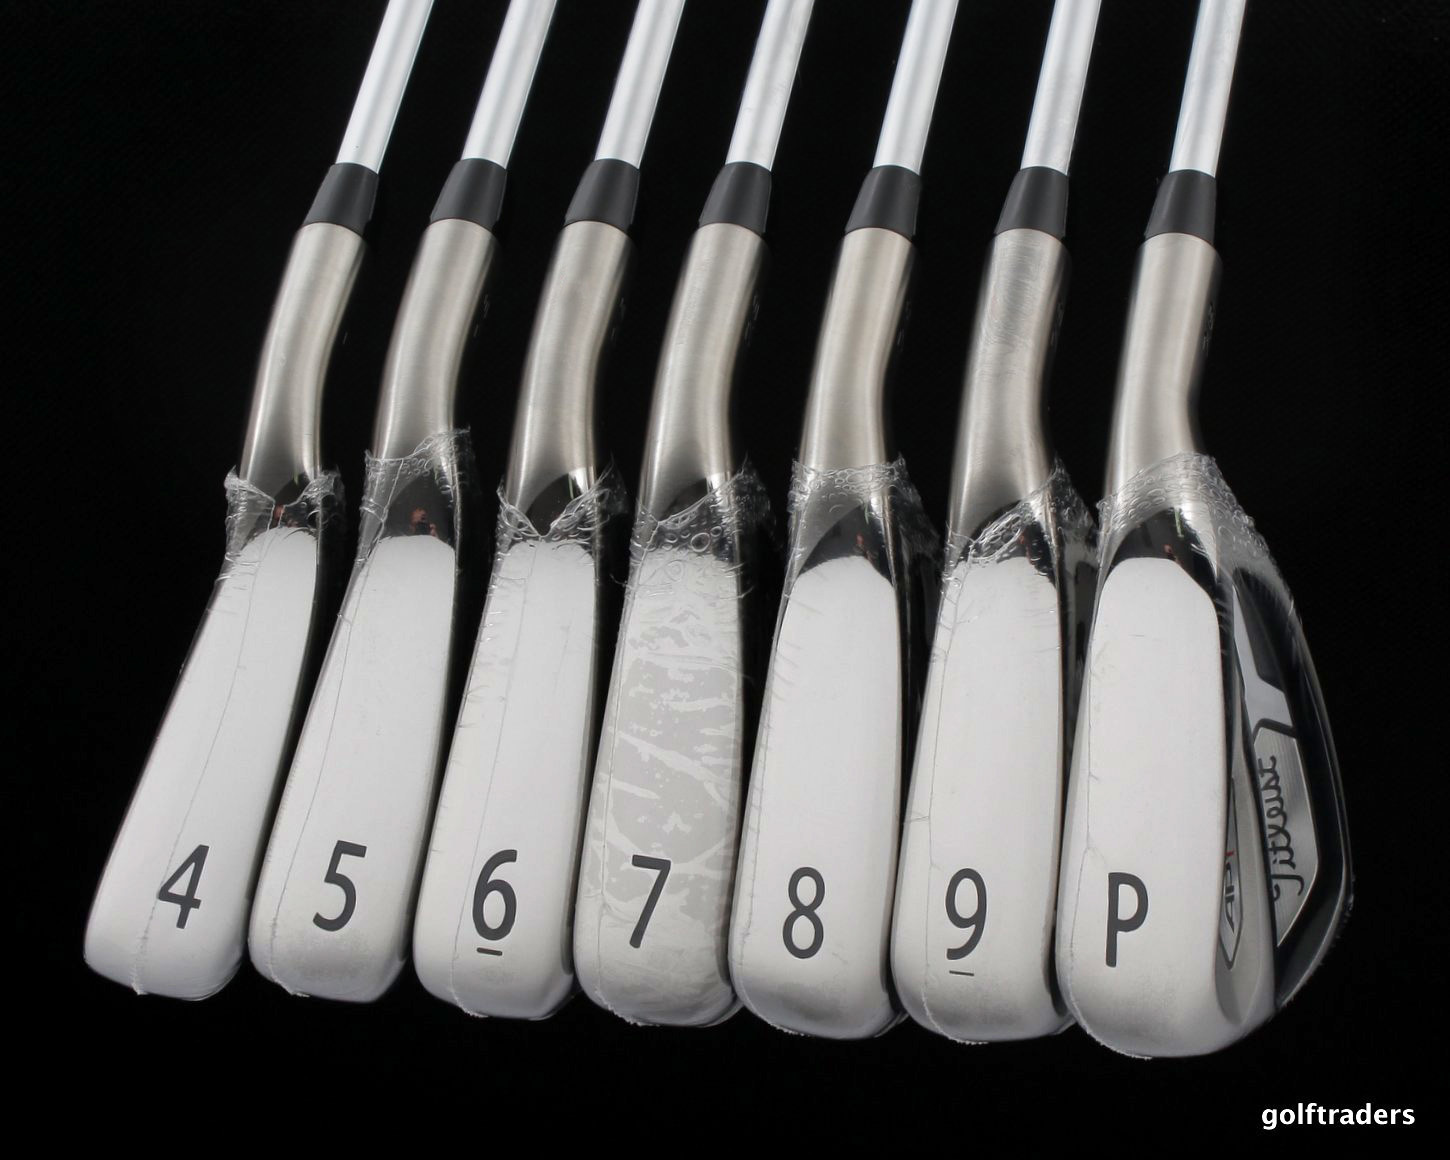 BUY GOLF CLUBS ONLINE, USED AND NEW